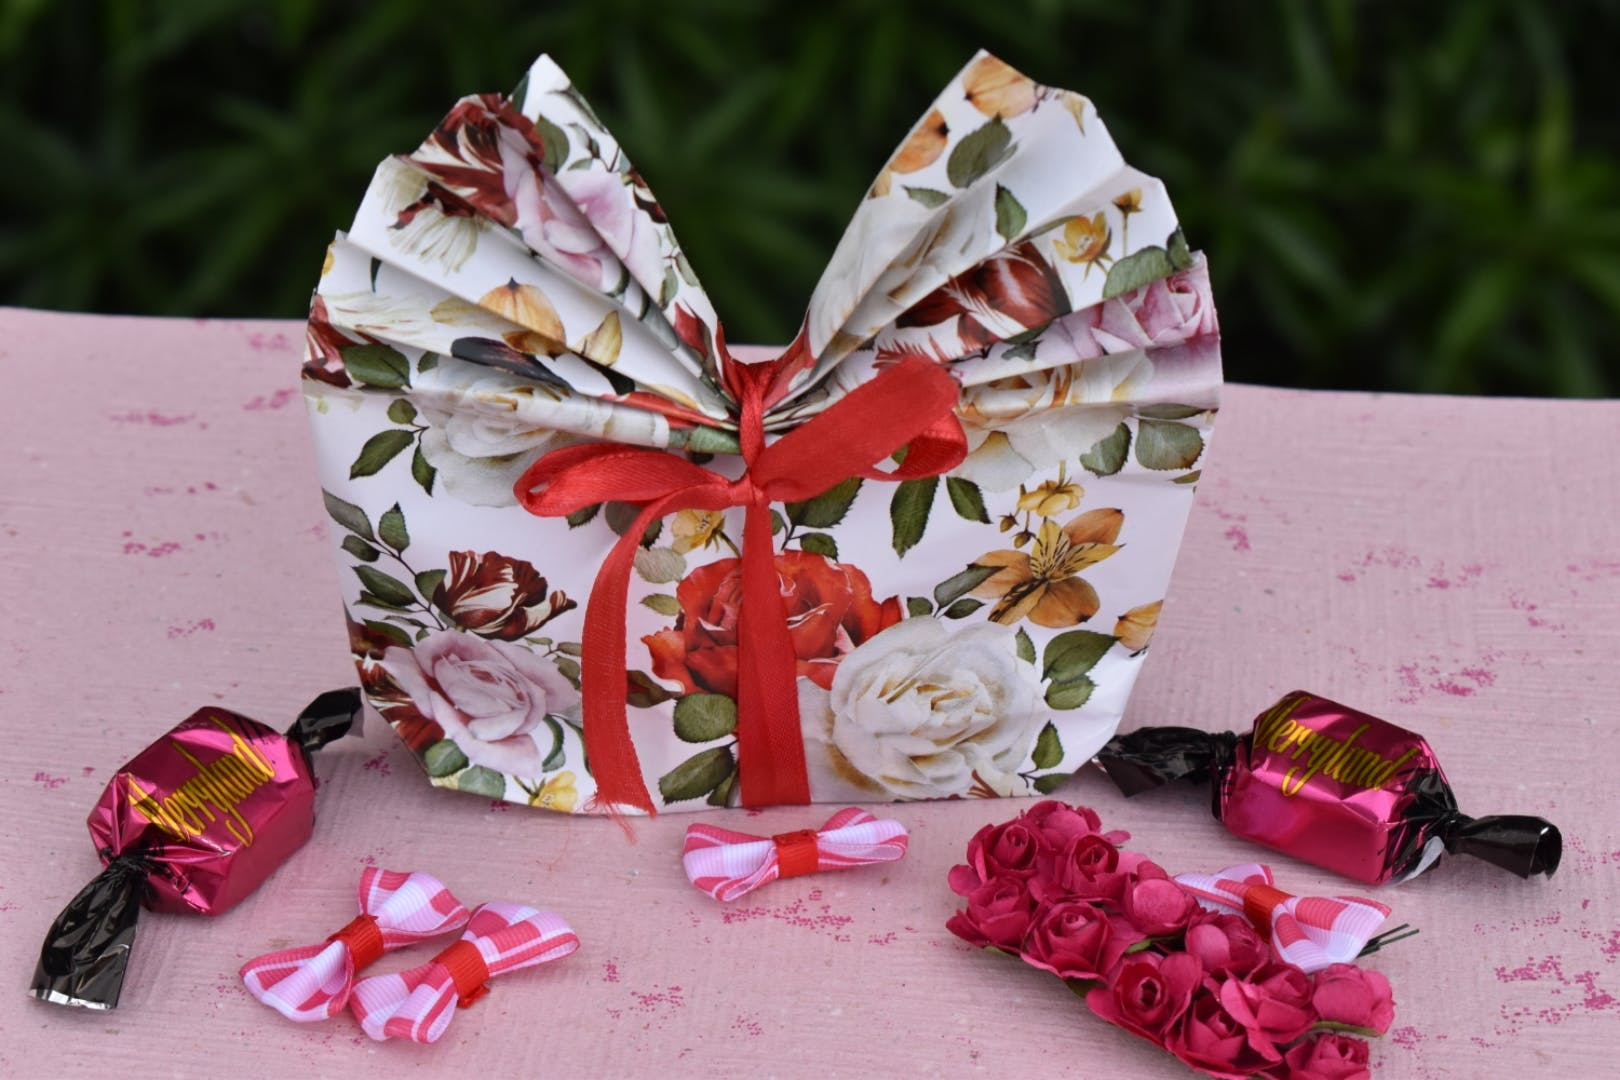 Pink,Butterfly,Party favor,Wedding favors,Paper,Present,Paper product,Fashion accessory,Moths and butterflies,Ribbon